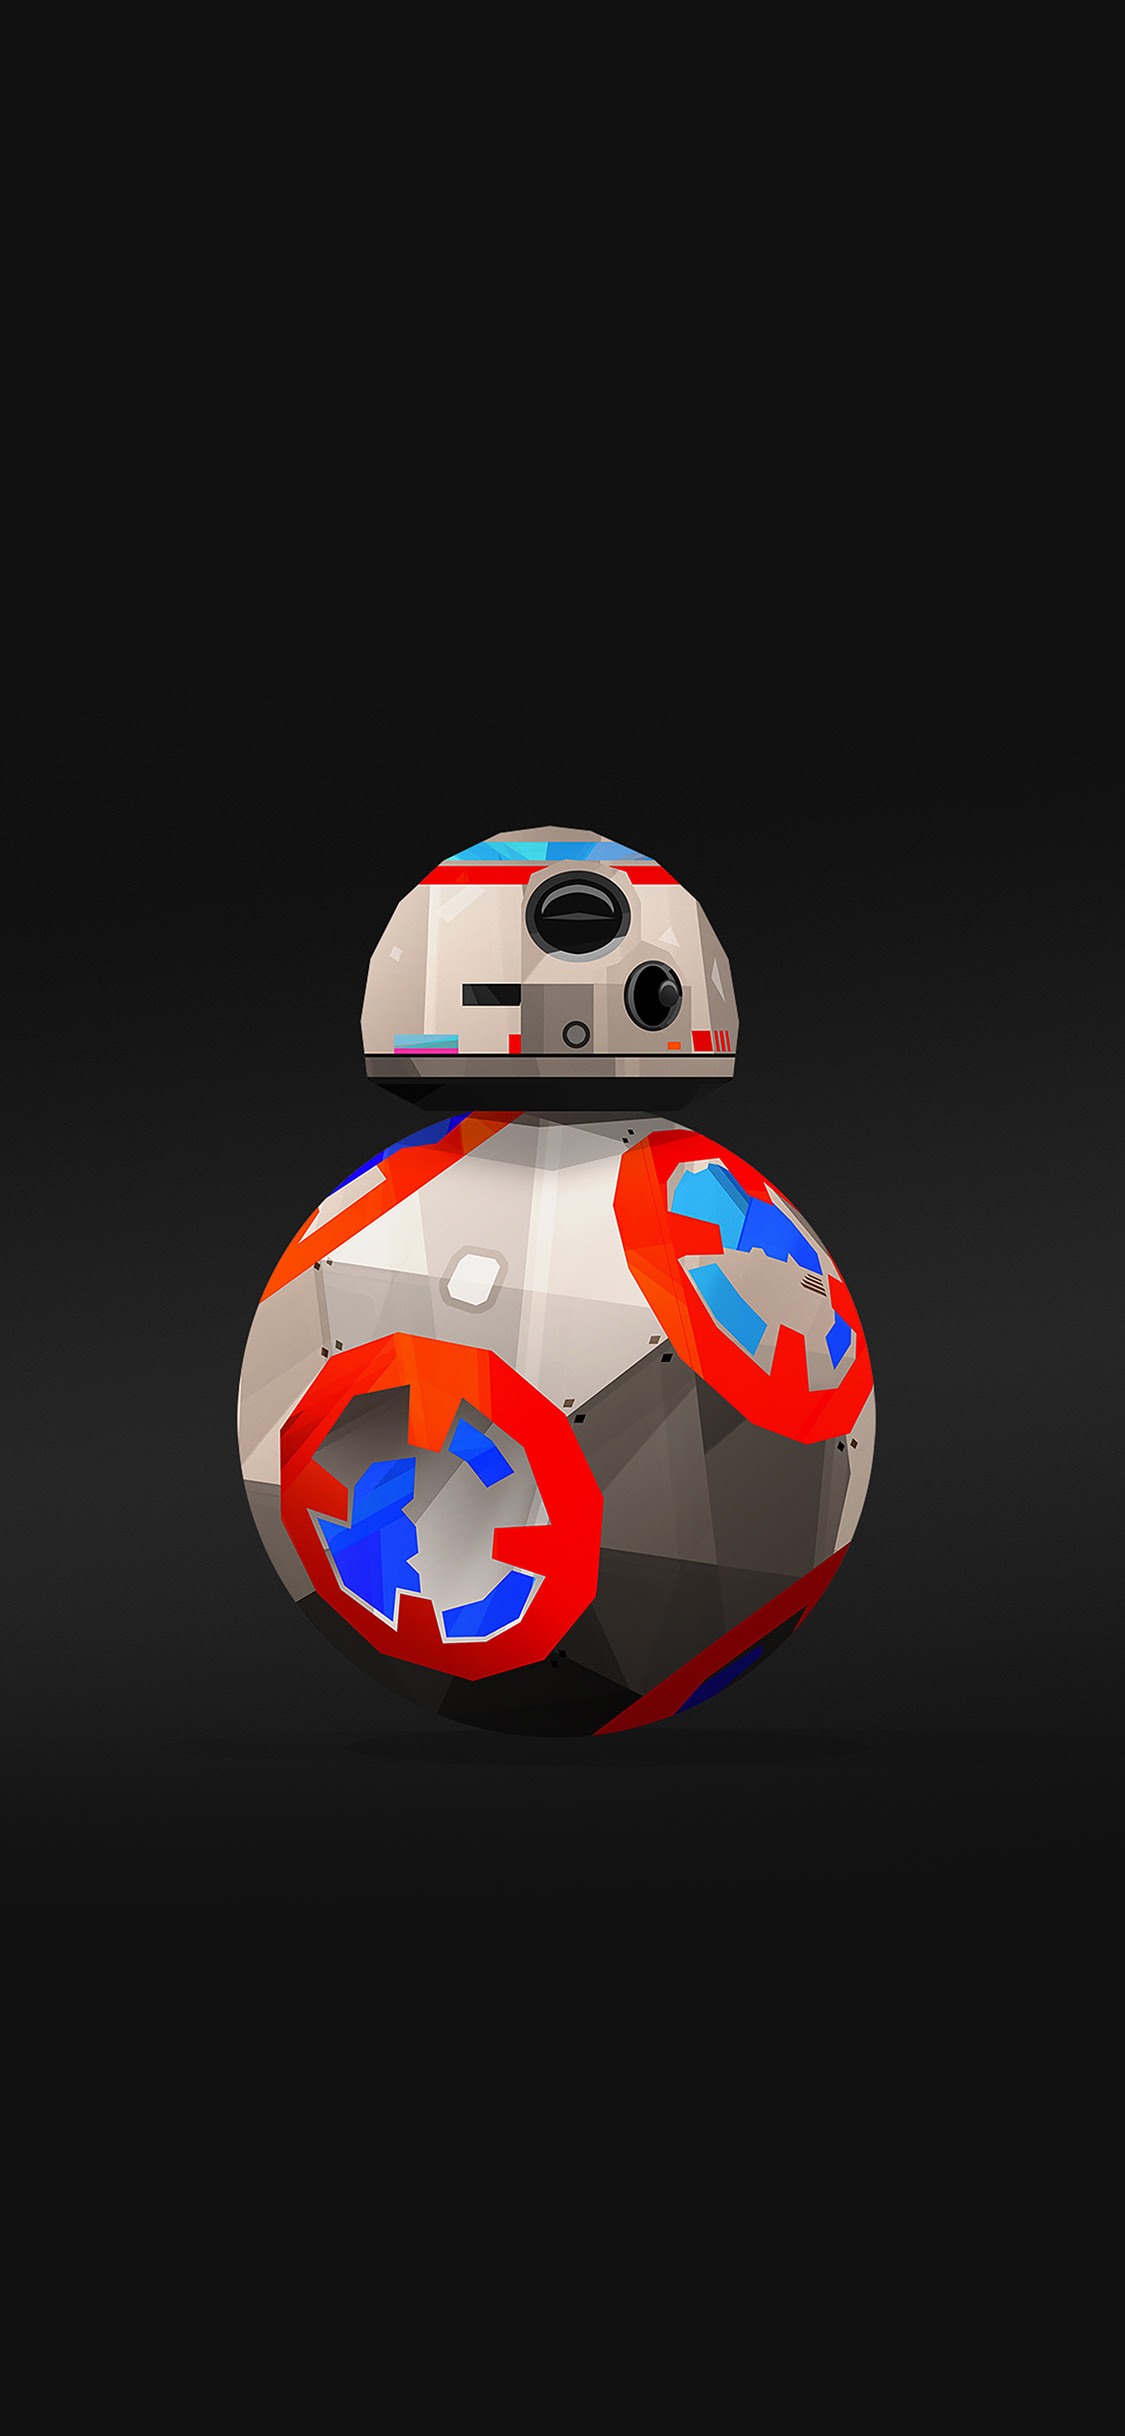 Best Wallpapers To Celebrate Star Wars Day In 2020 Imore